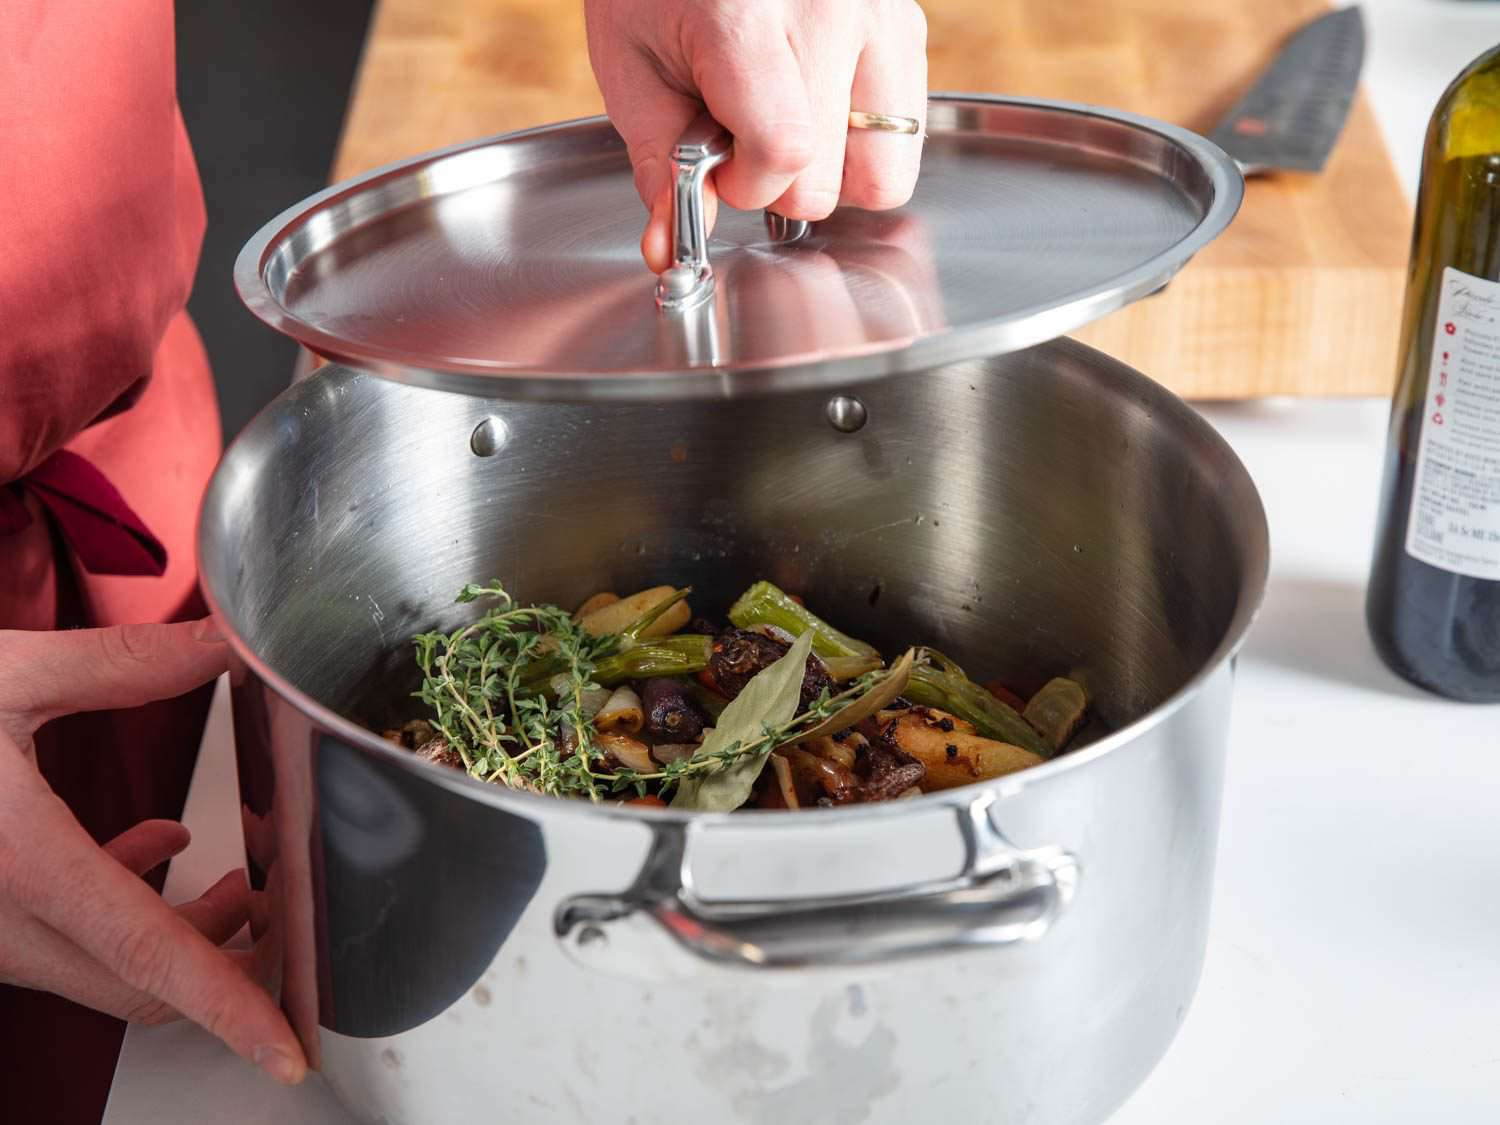 Popping a lid on a stockpot with all ingredients for duck stock except for water. Stockpot can be refrigerated until you are ready to make stock and then all you need to do is add water and cook on the stovetop.